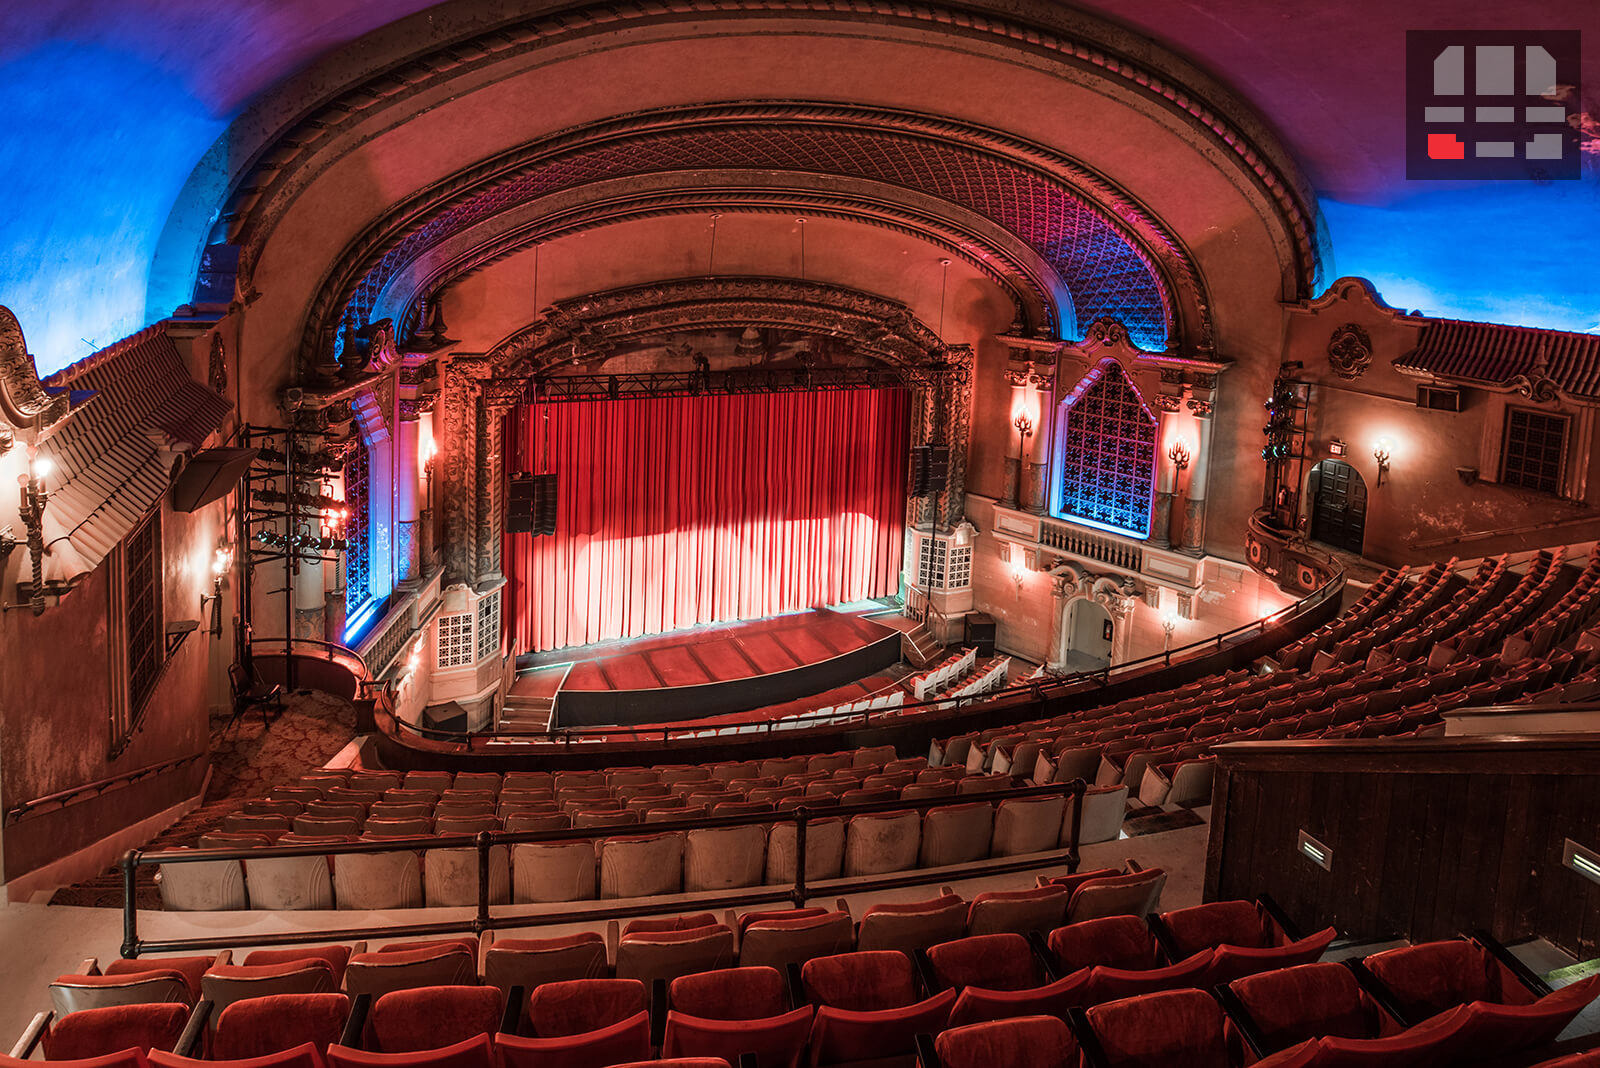 Orpheum memphis seating review for From the balcony